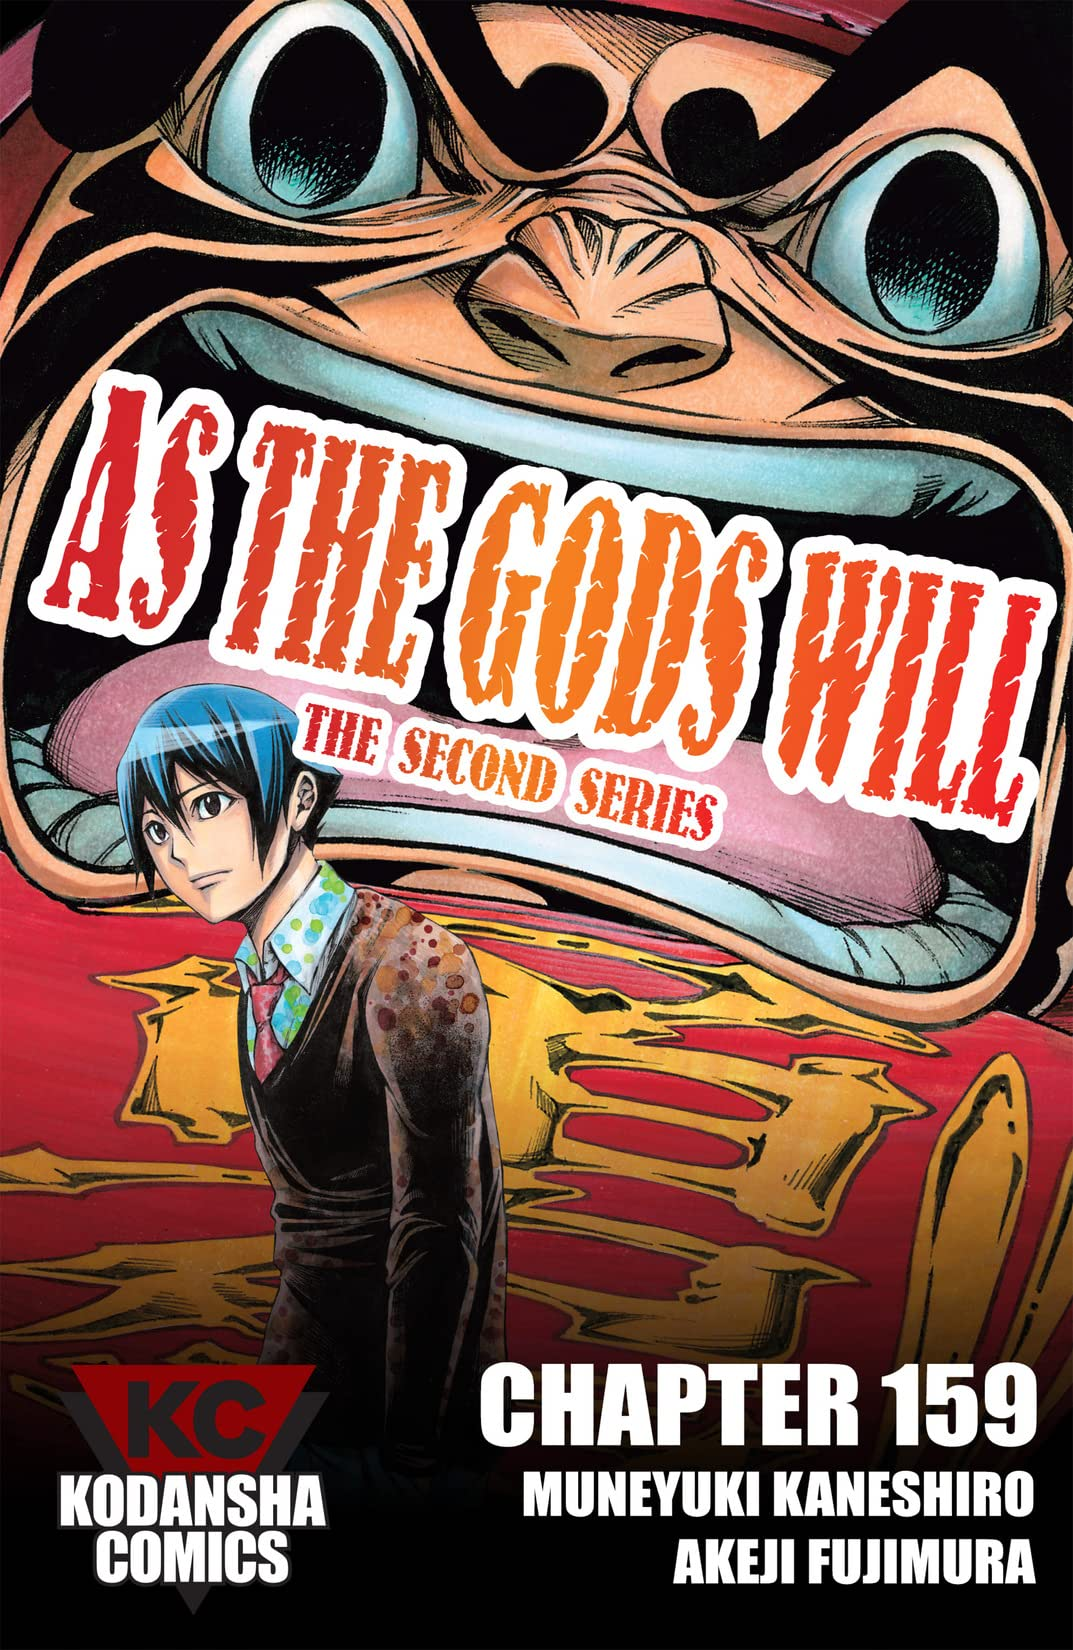 As The Gods Will: The Second Series #159